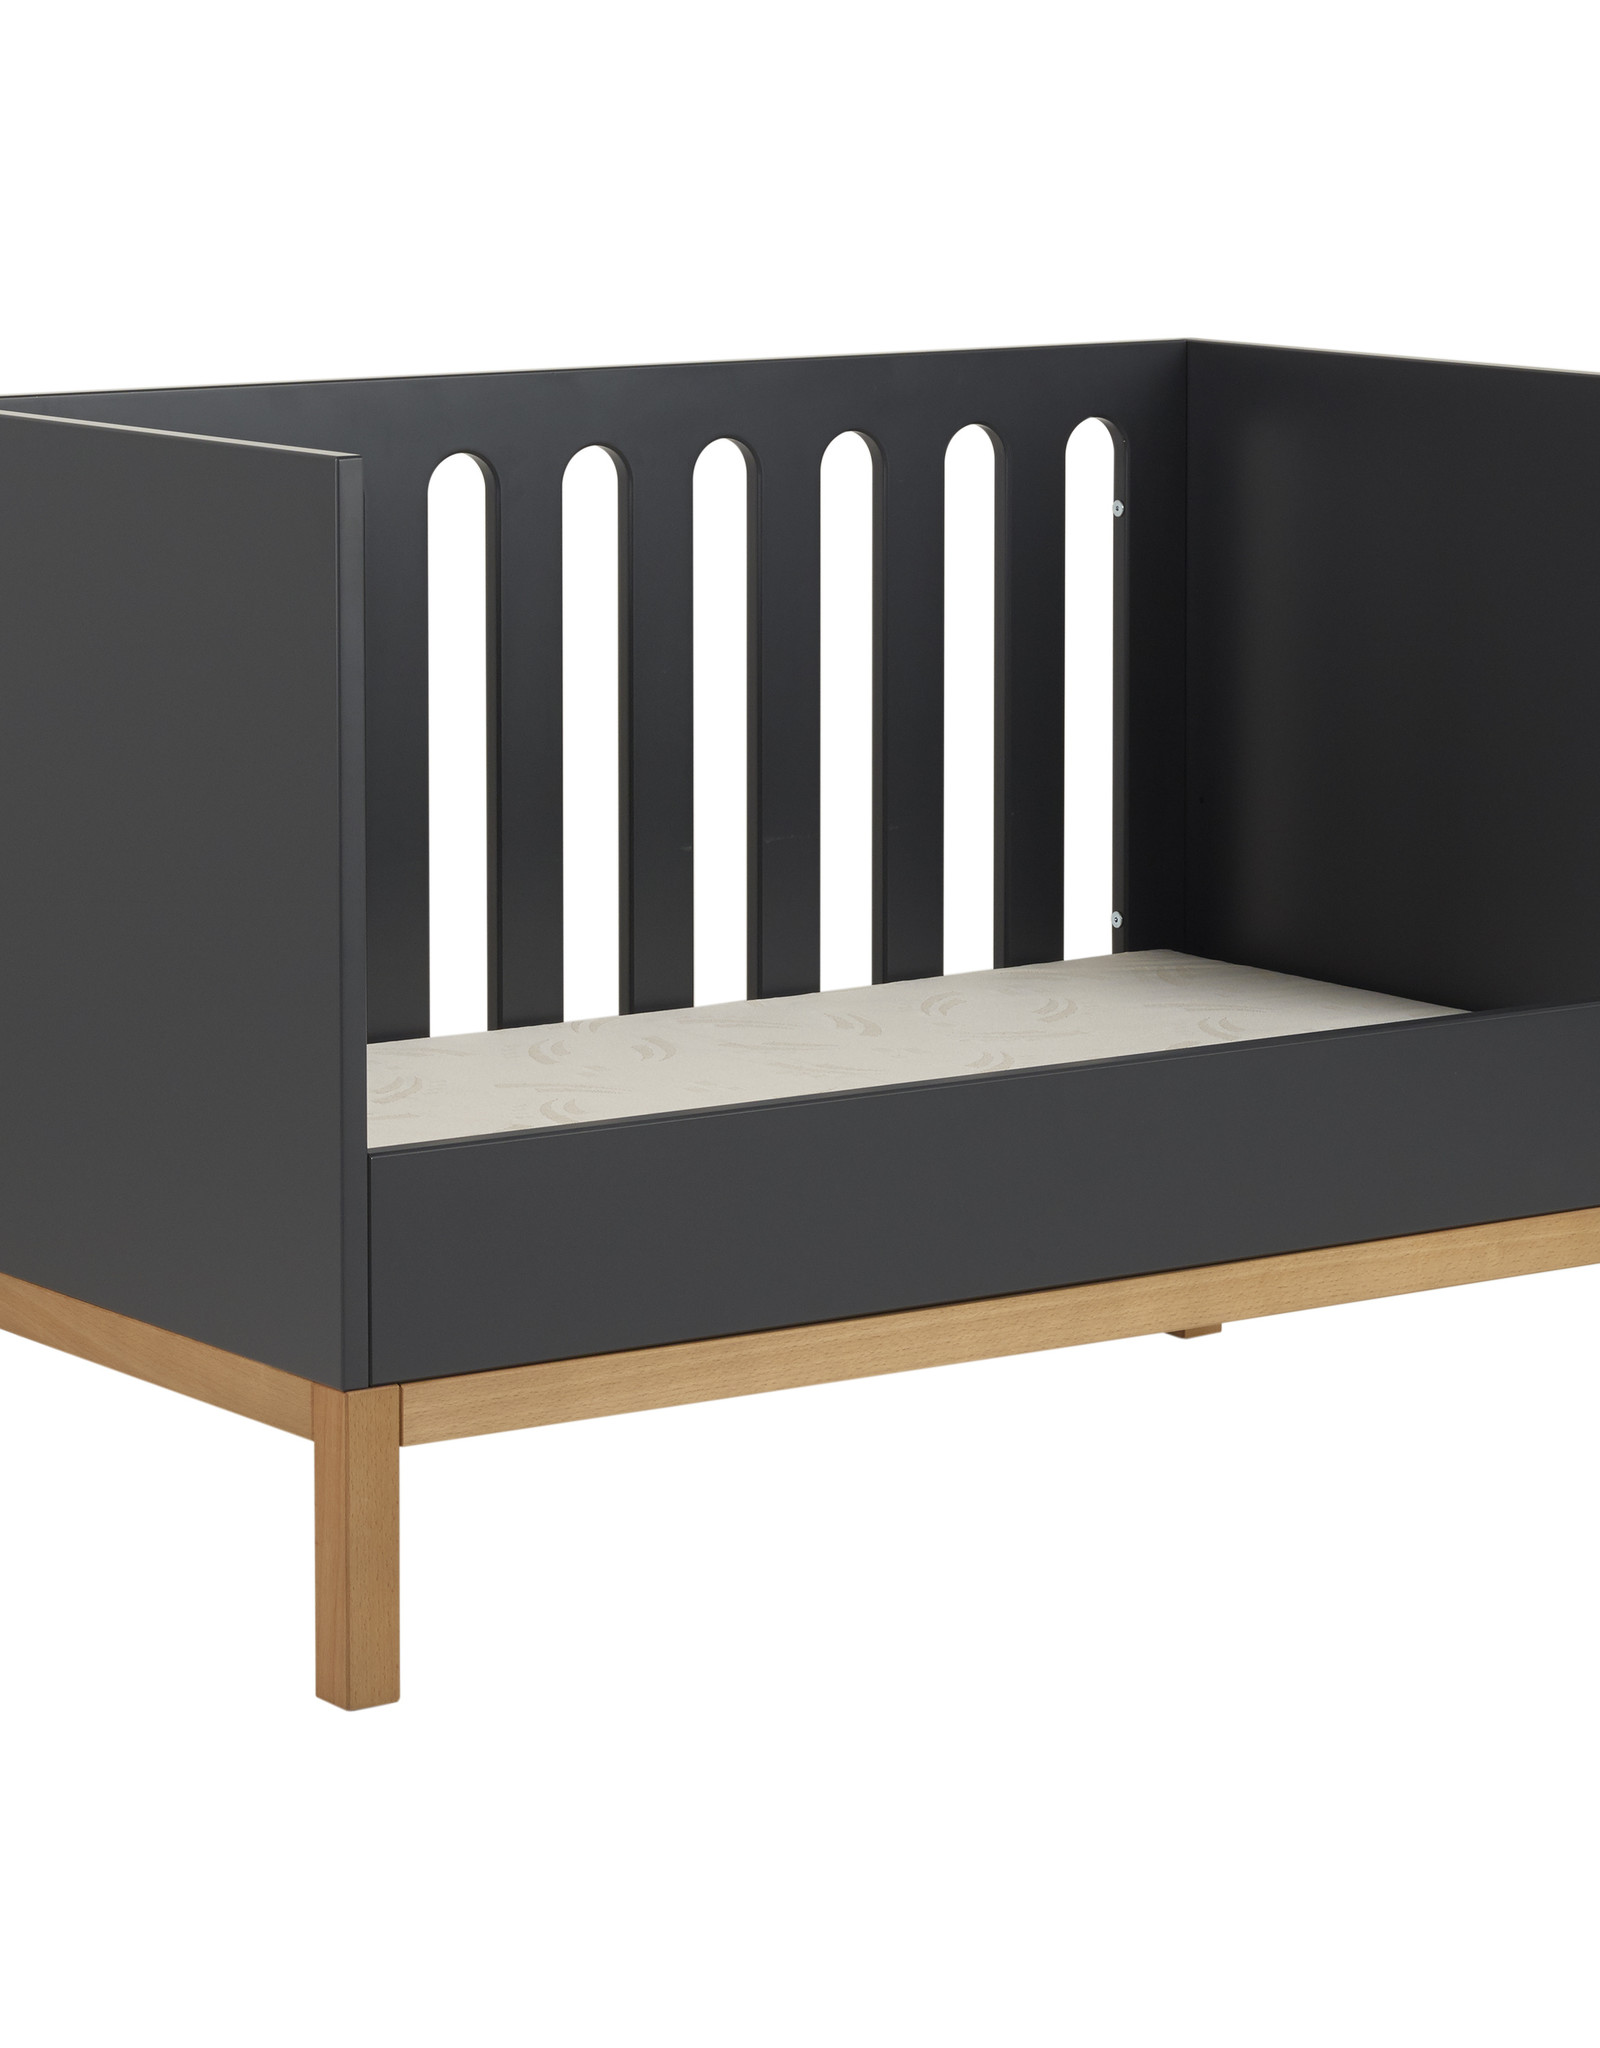 Quax Indigo bed 120 * 60 moonshadow